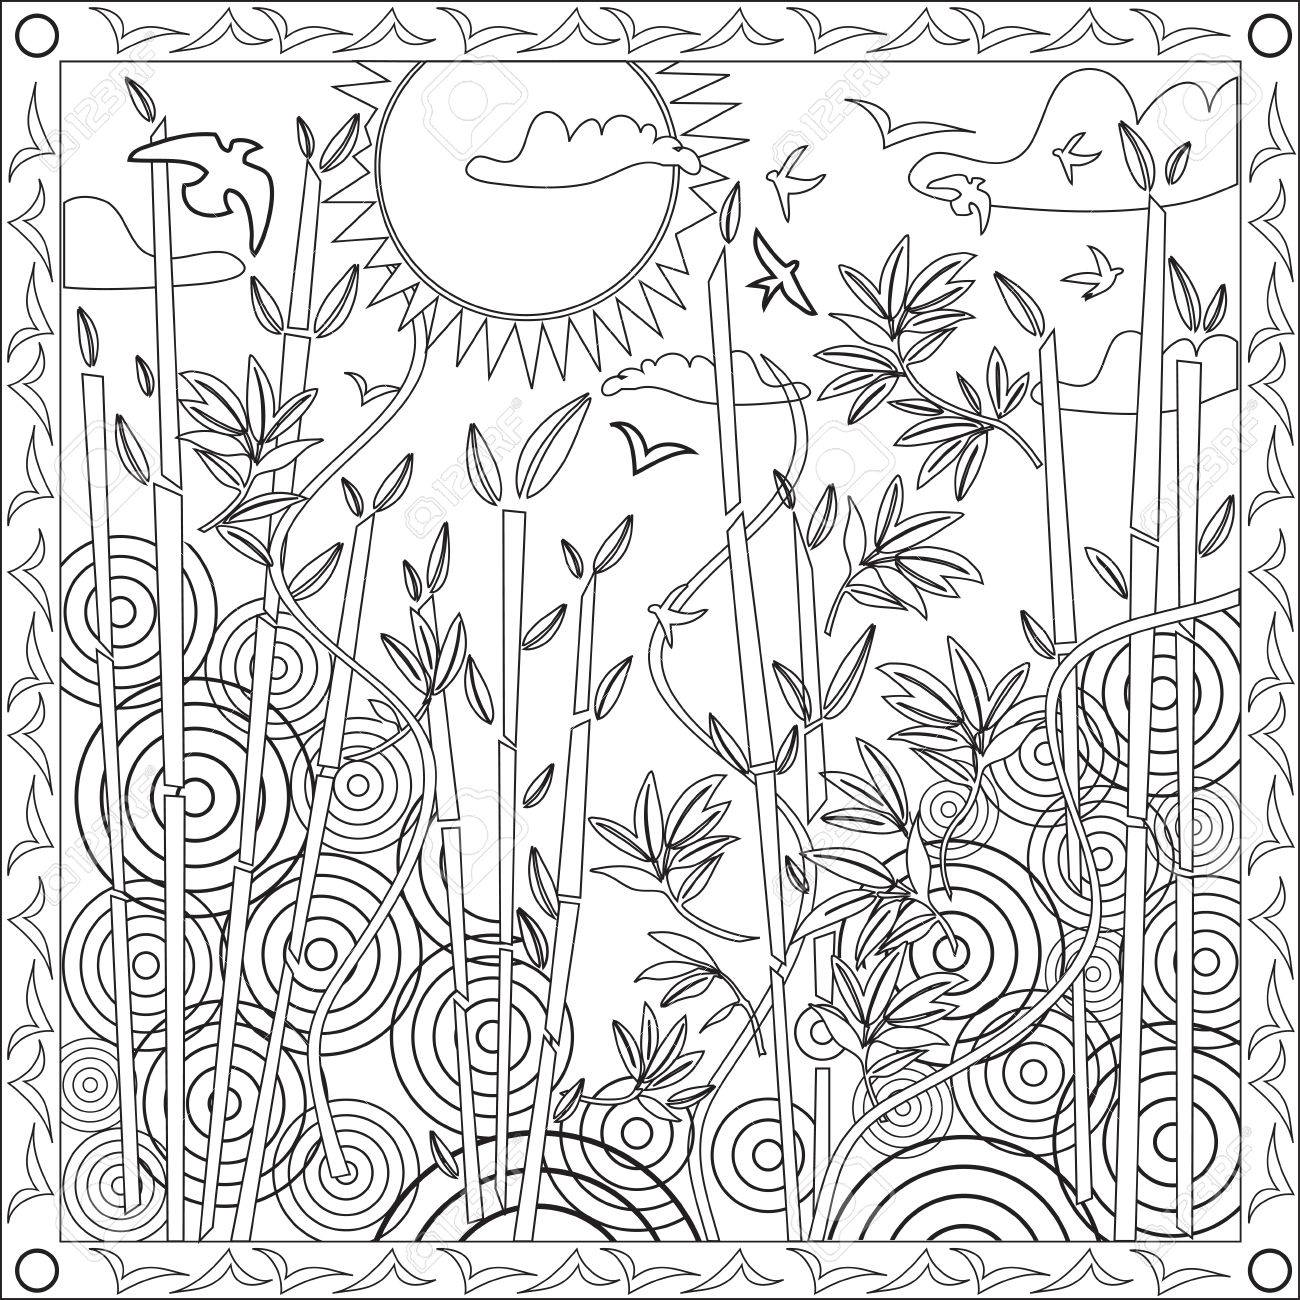 Coloring Pages Bamboo Coloring Pages page coloring book for adults square format japanese bamboo design vector illustration sunset stock vector